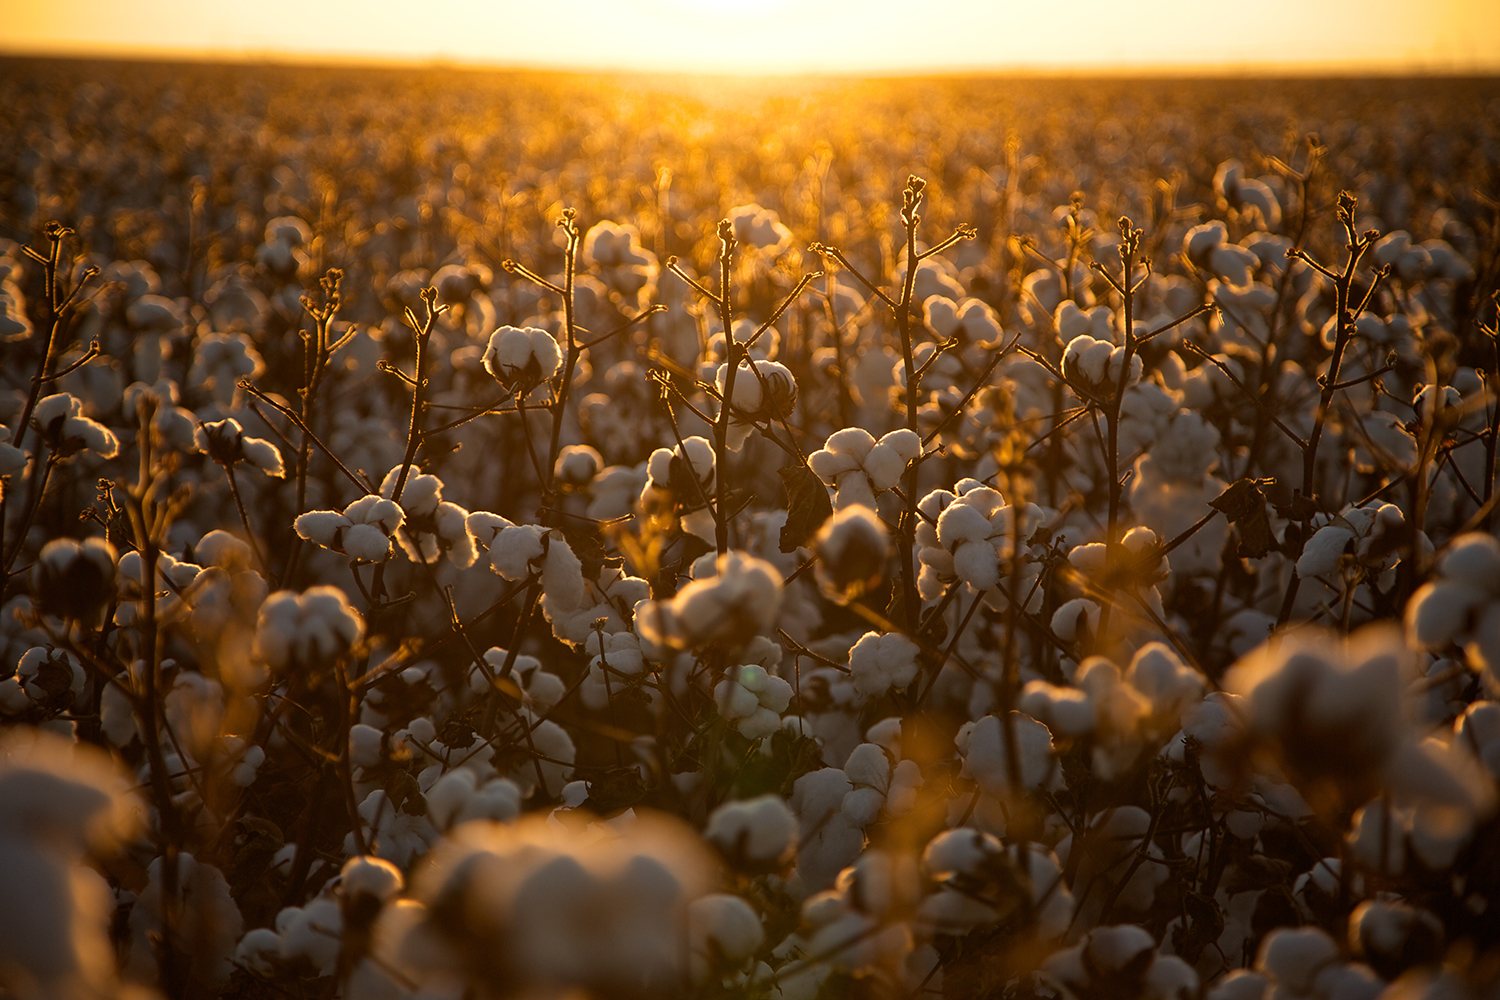 Cotton_USA_008.jpg